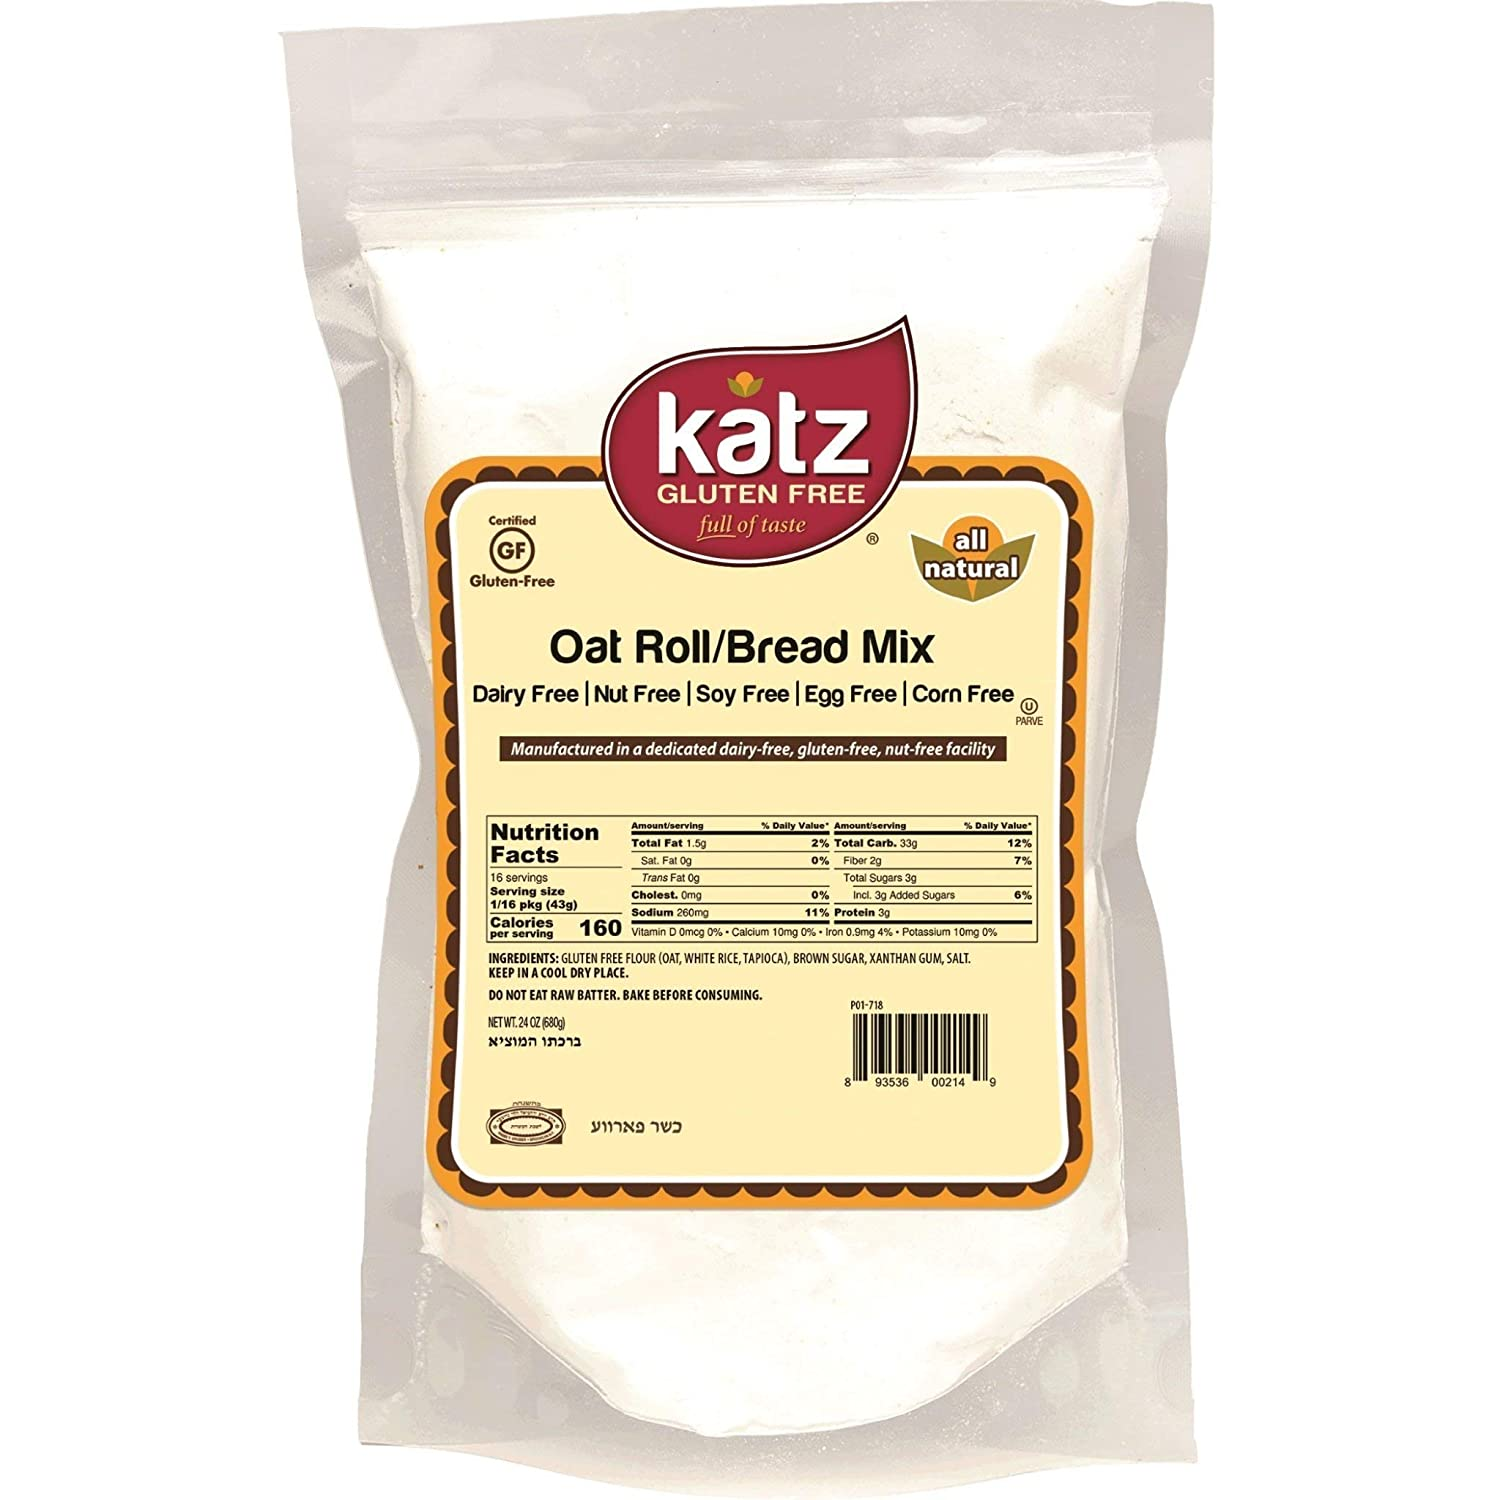 Katz Gluten Free Oat Roll Bread Dairy Nut Mix and Soy Baltimore Boston Mall Mall